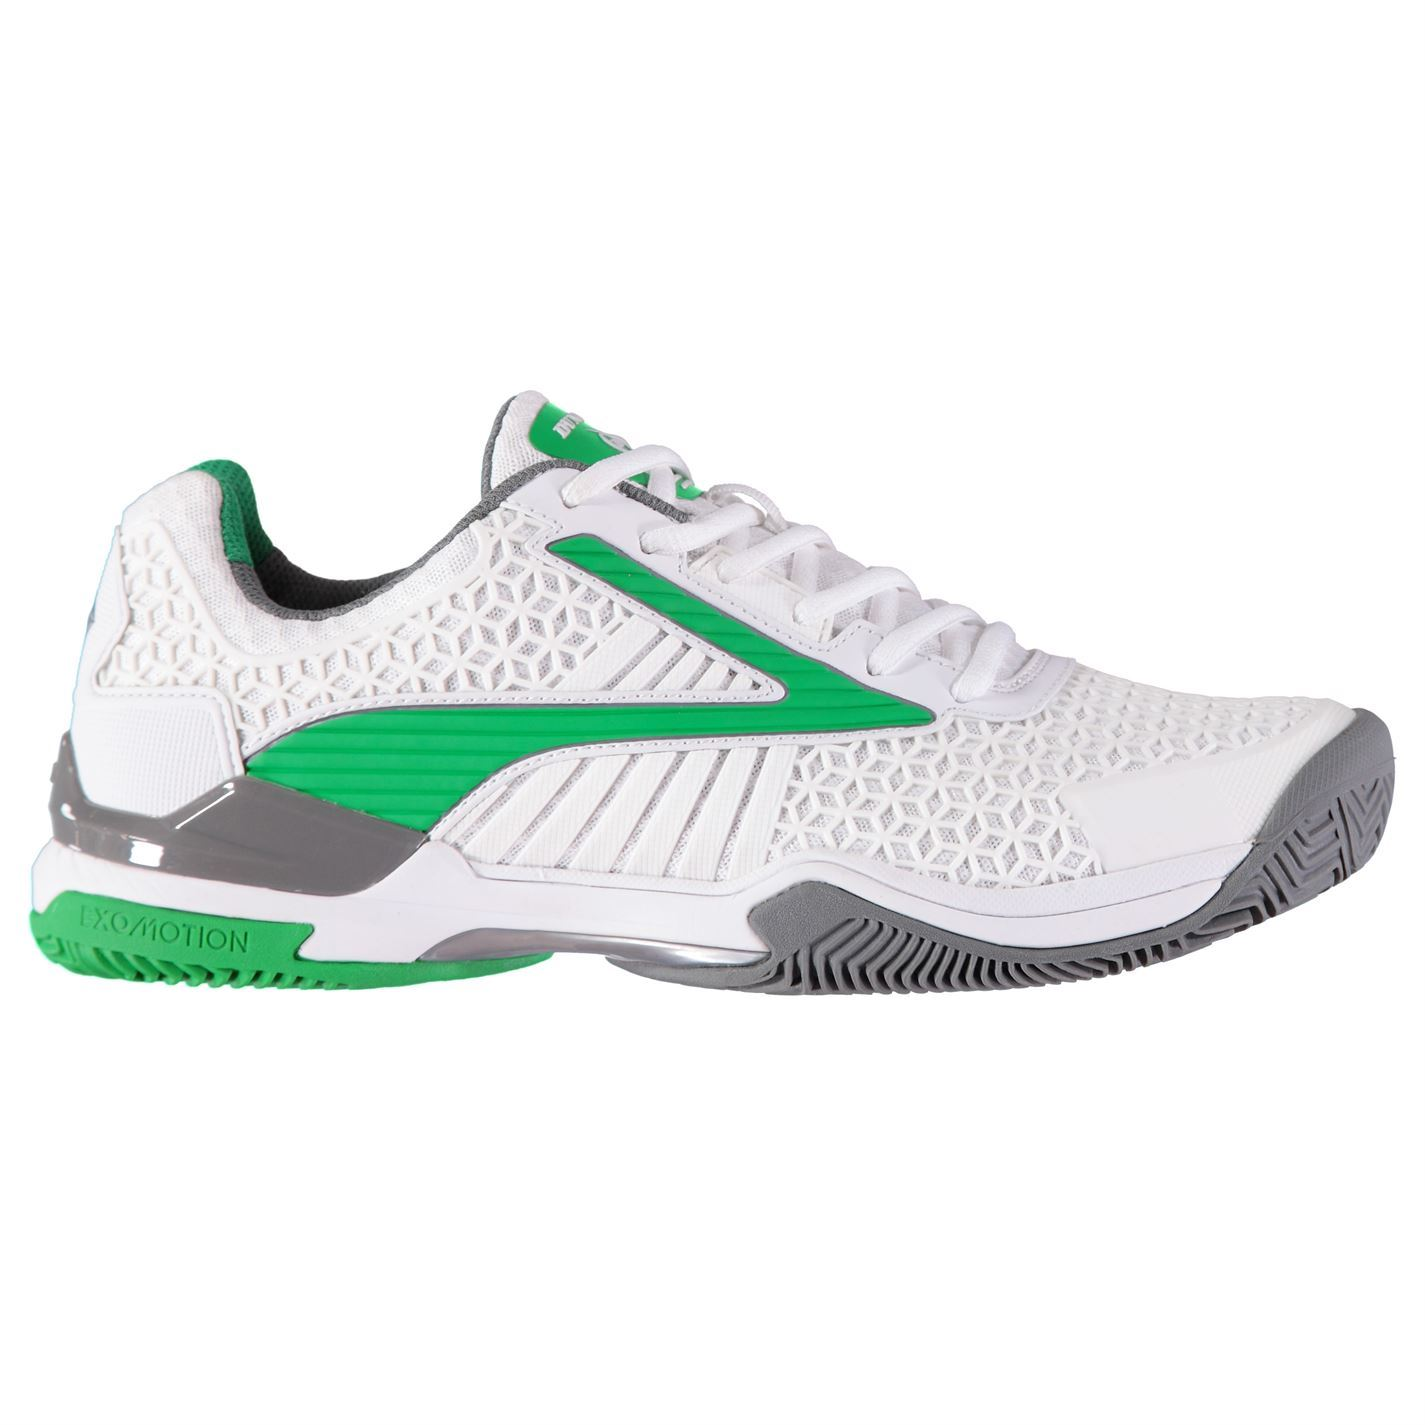 low priced 5e368 8af79 Details about Dunlop Mens Flash Elite Tennis Shoes Court Trainers Lace Up  Padded Ankle Collar